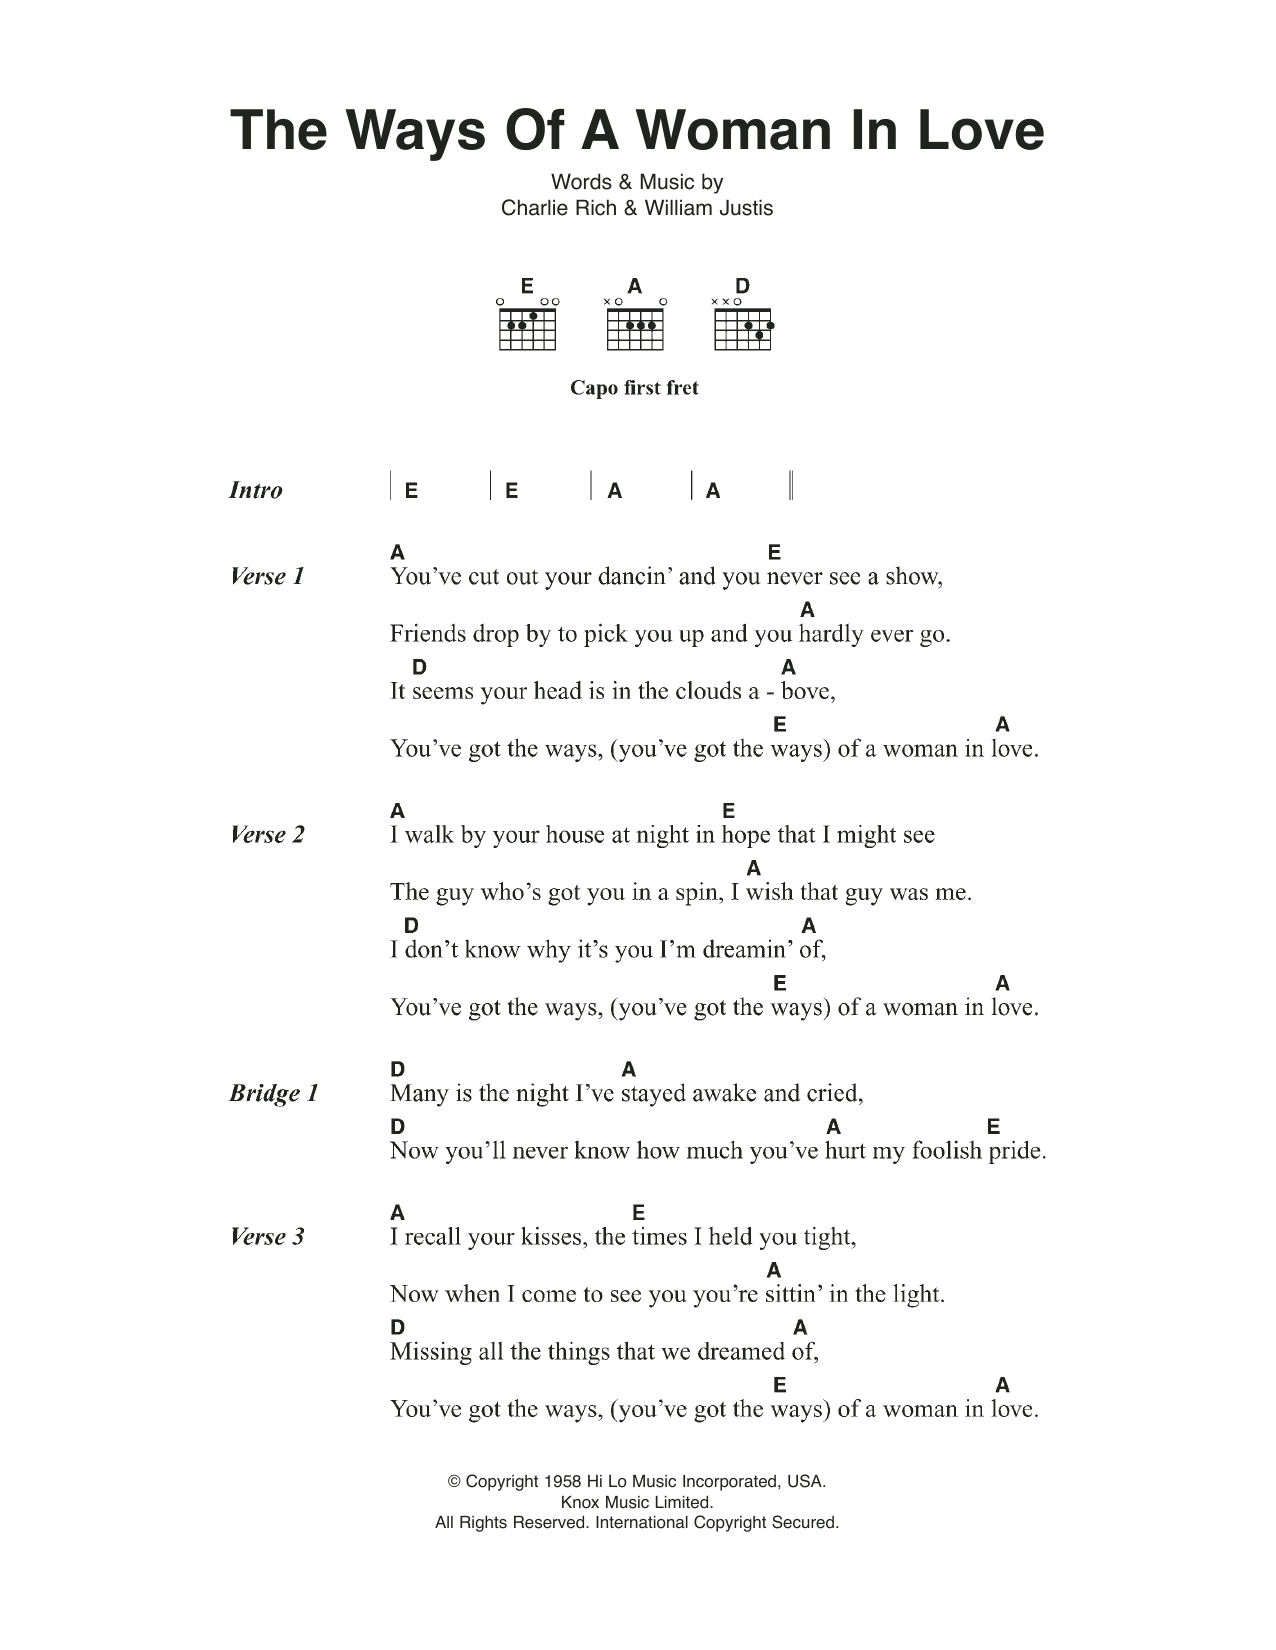 The ways of a woman in love lyrics